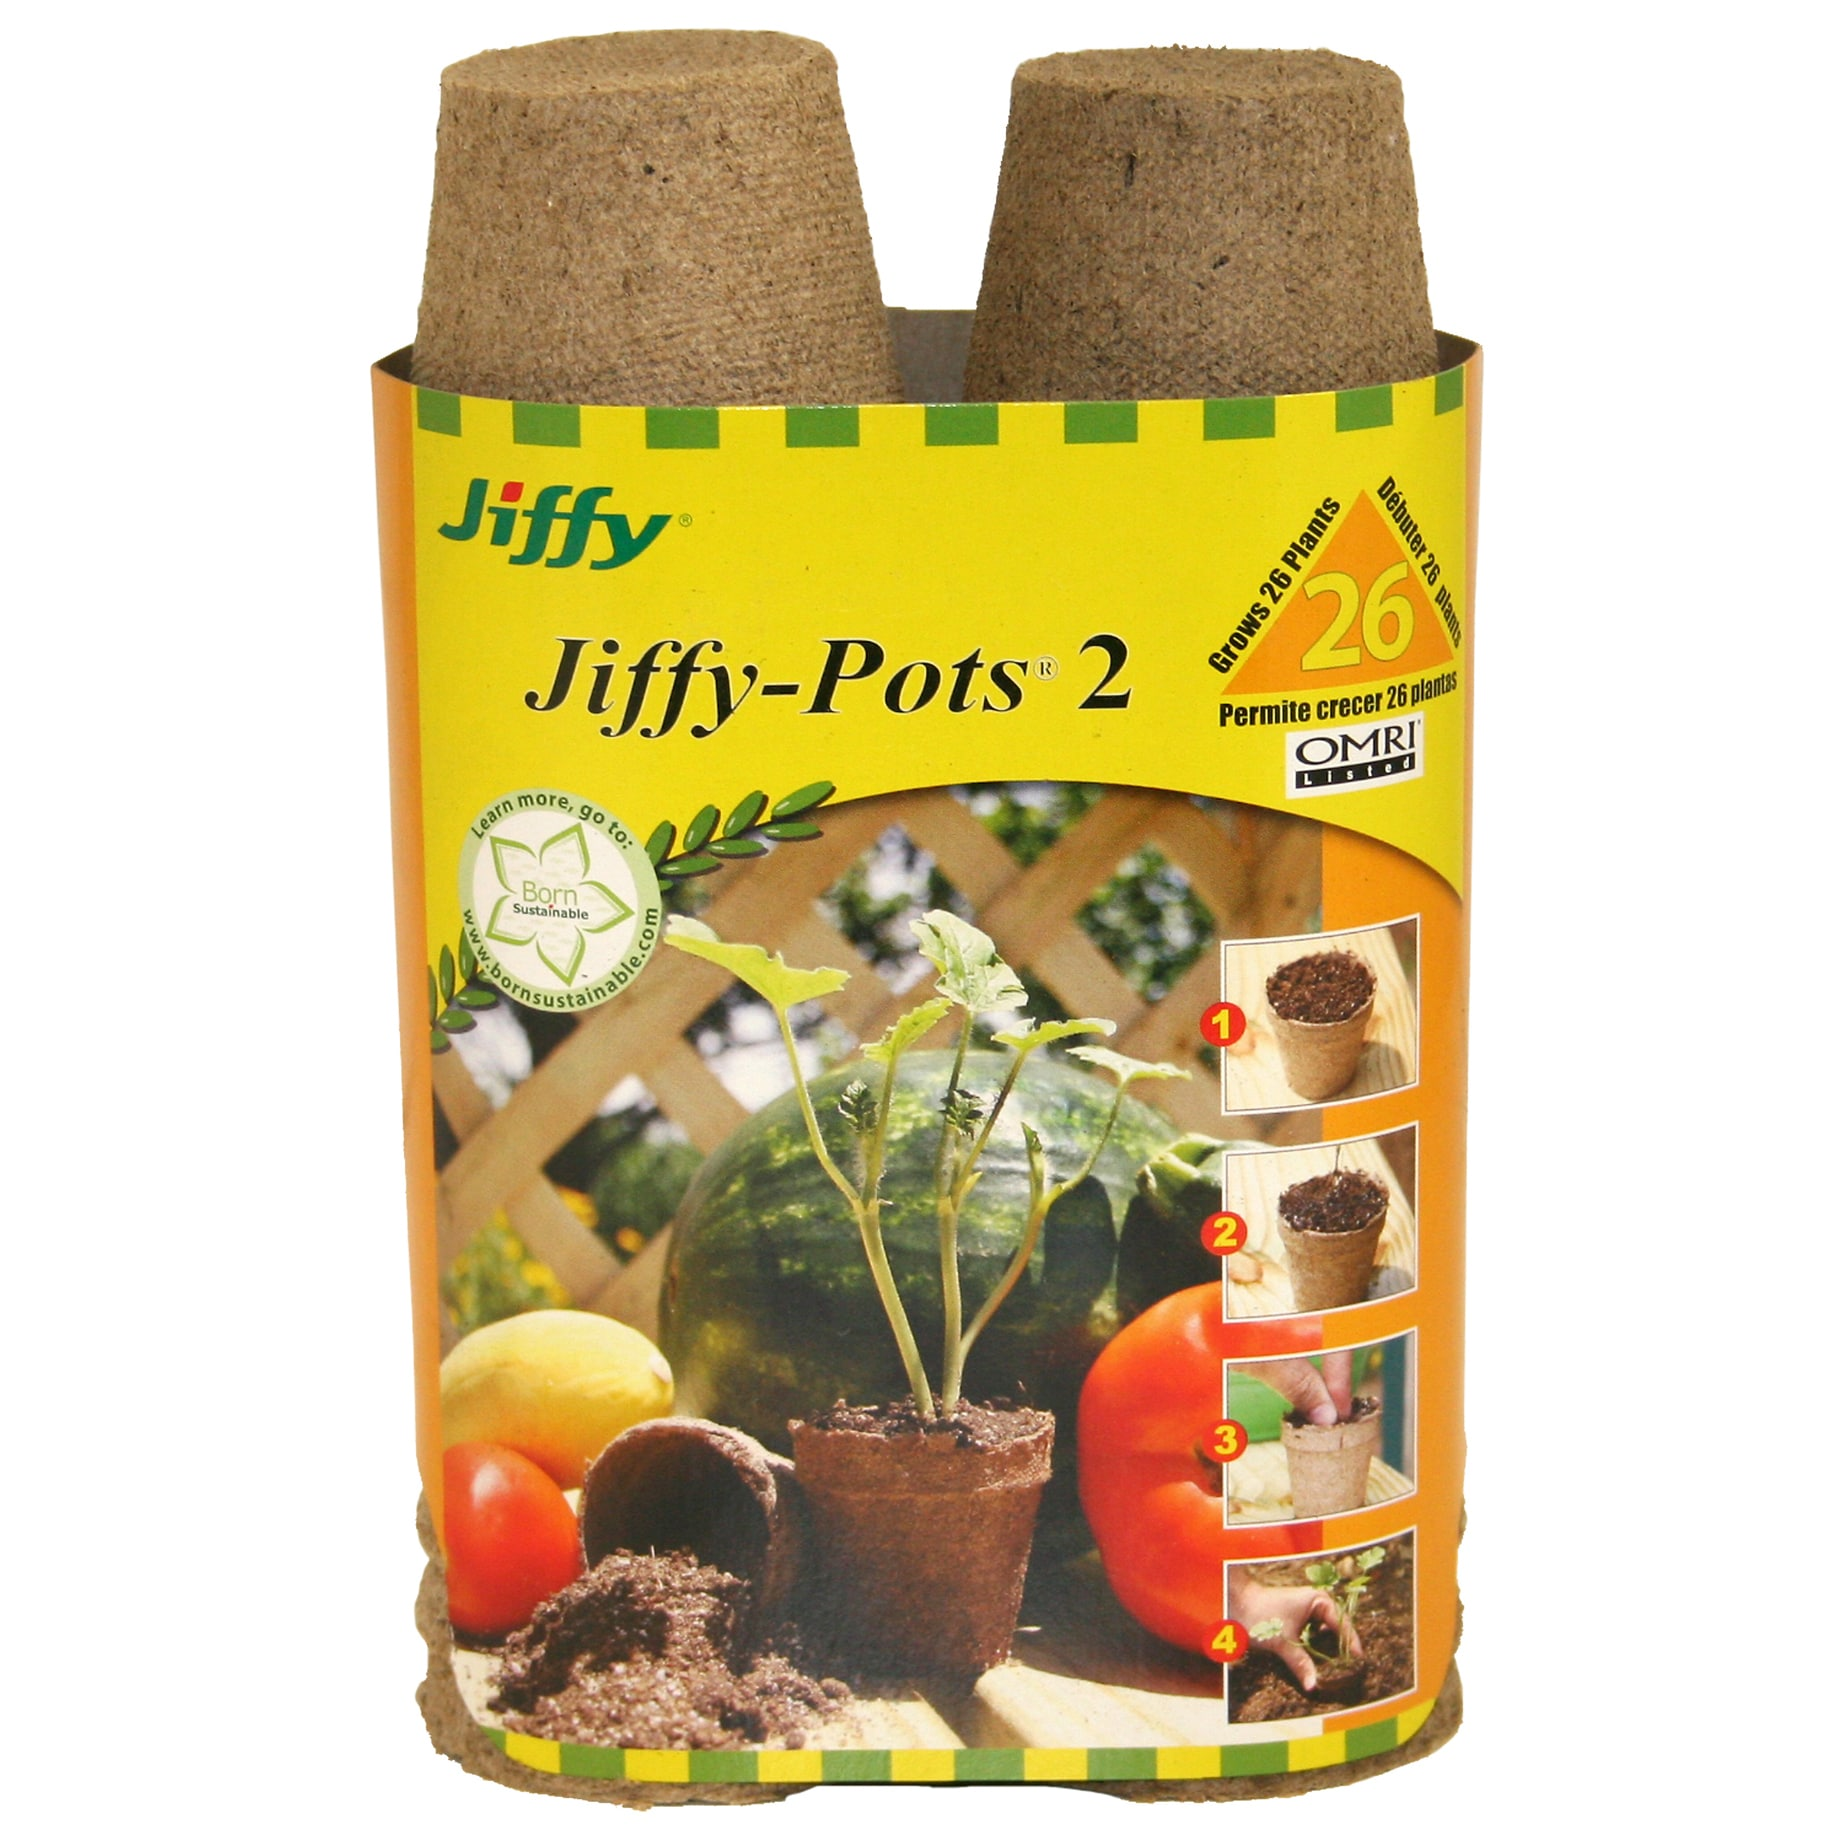 Jiffy JP226 26-count 2-1/4-inch Jiffy Pots (Plant Starter...